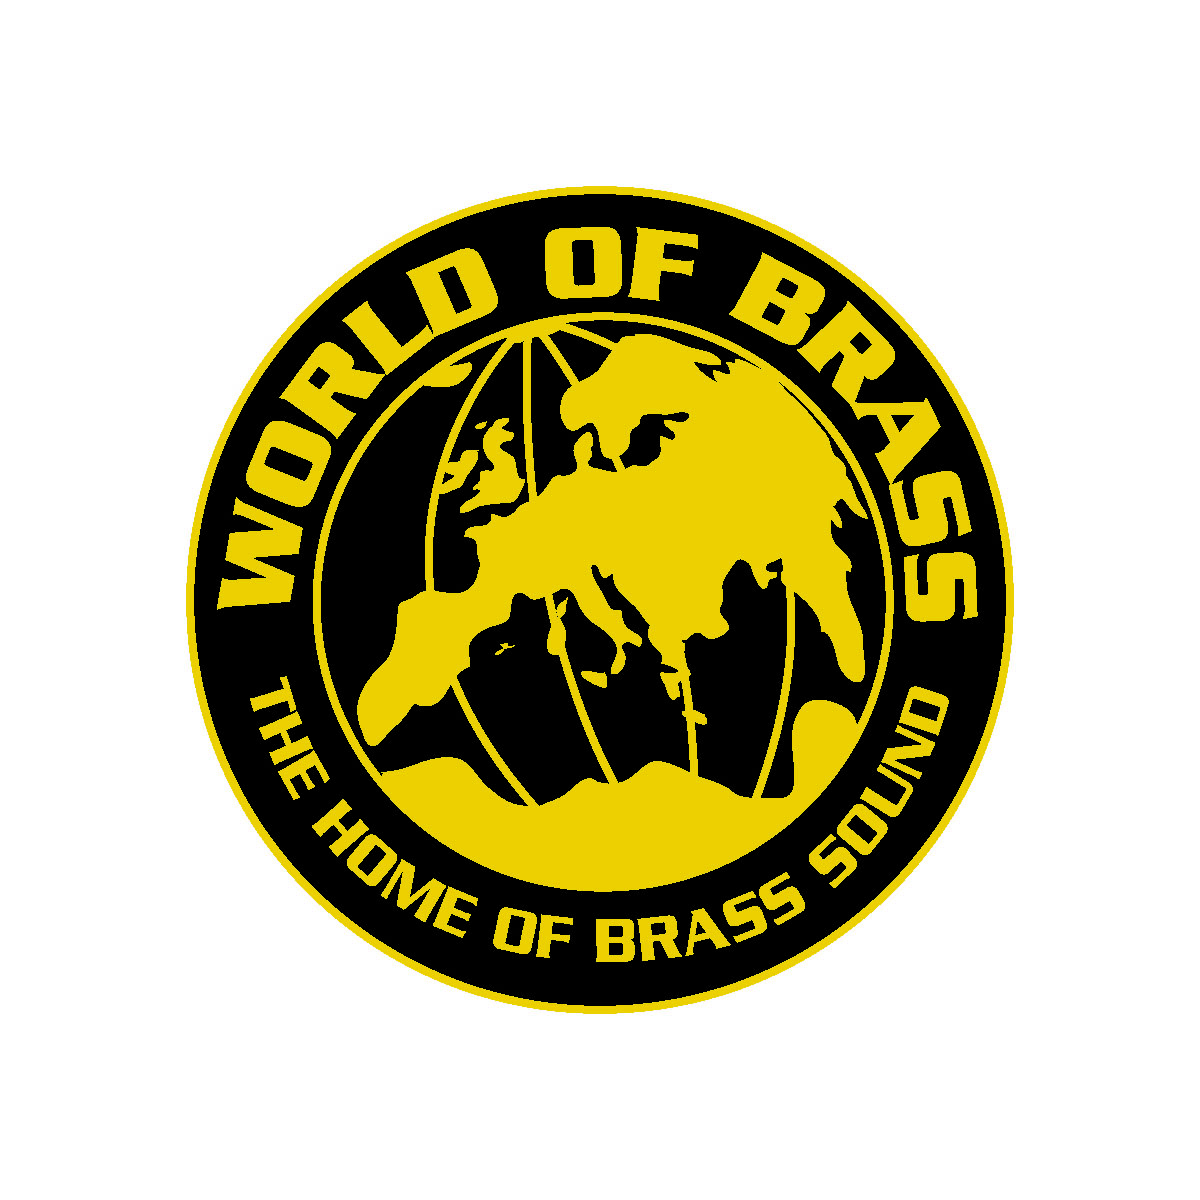 worldofbrass